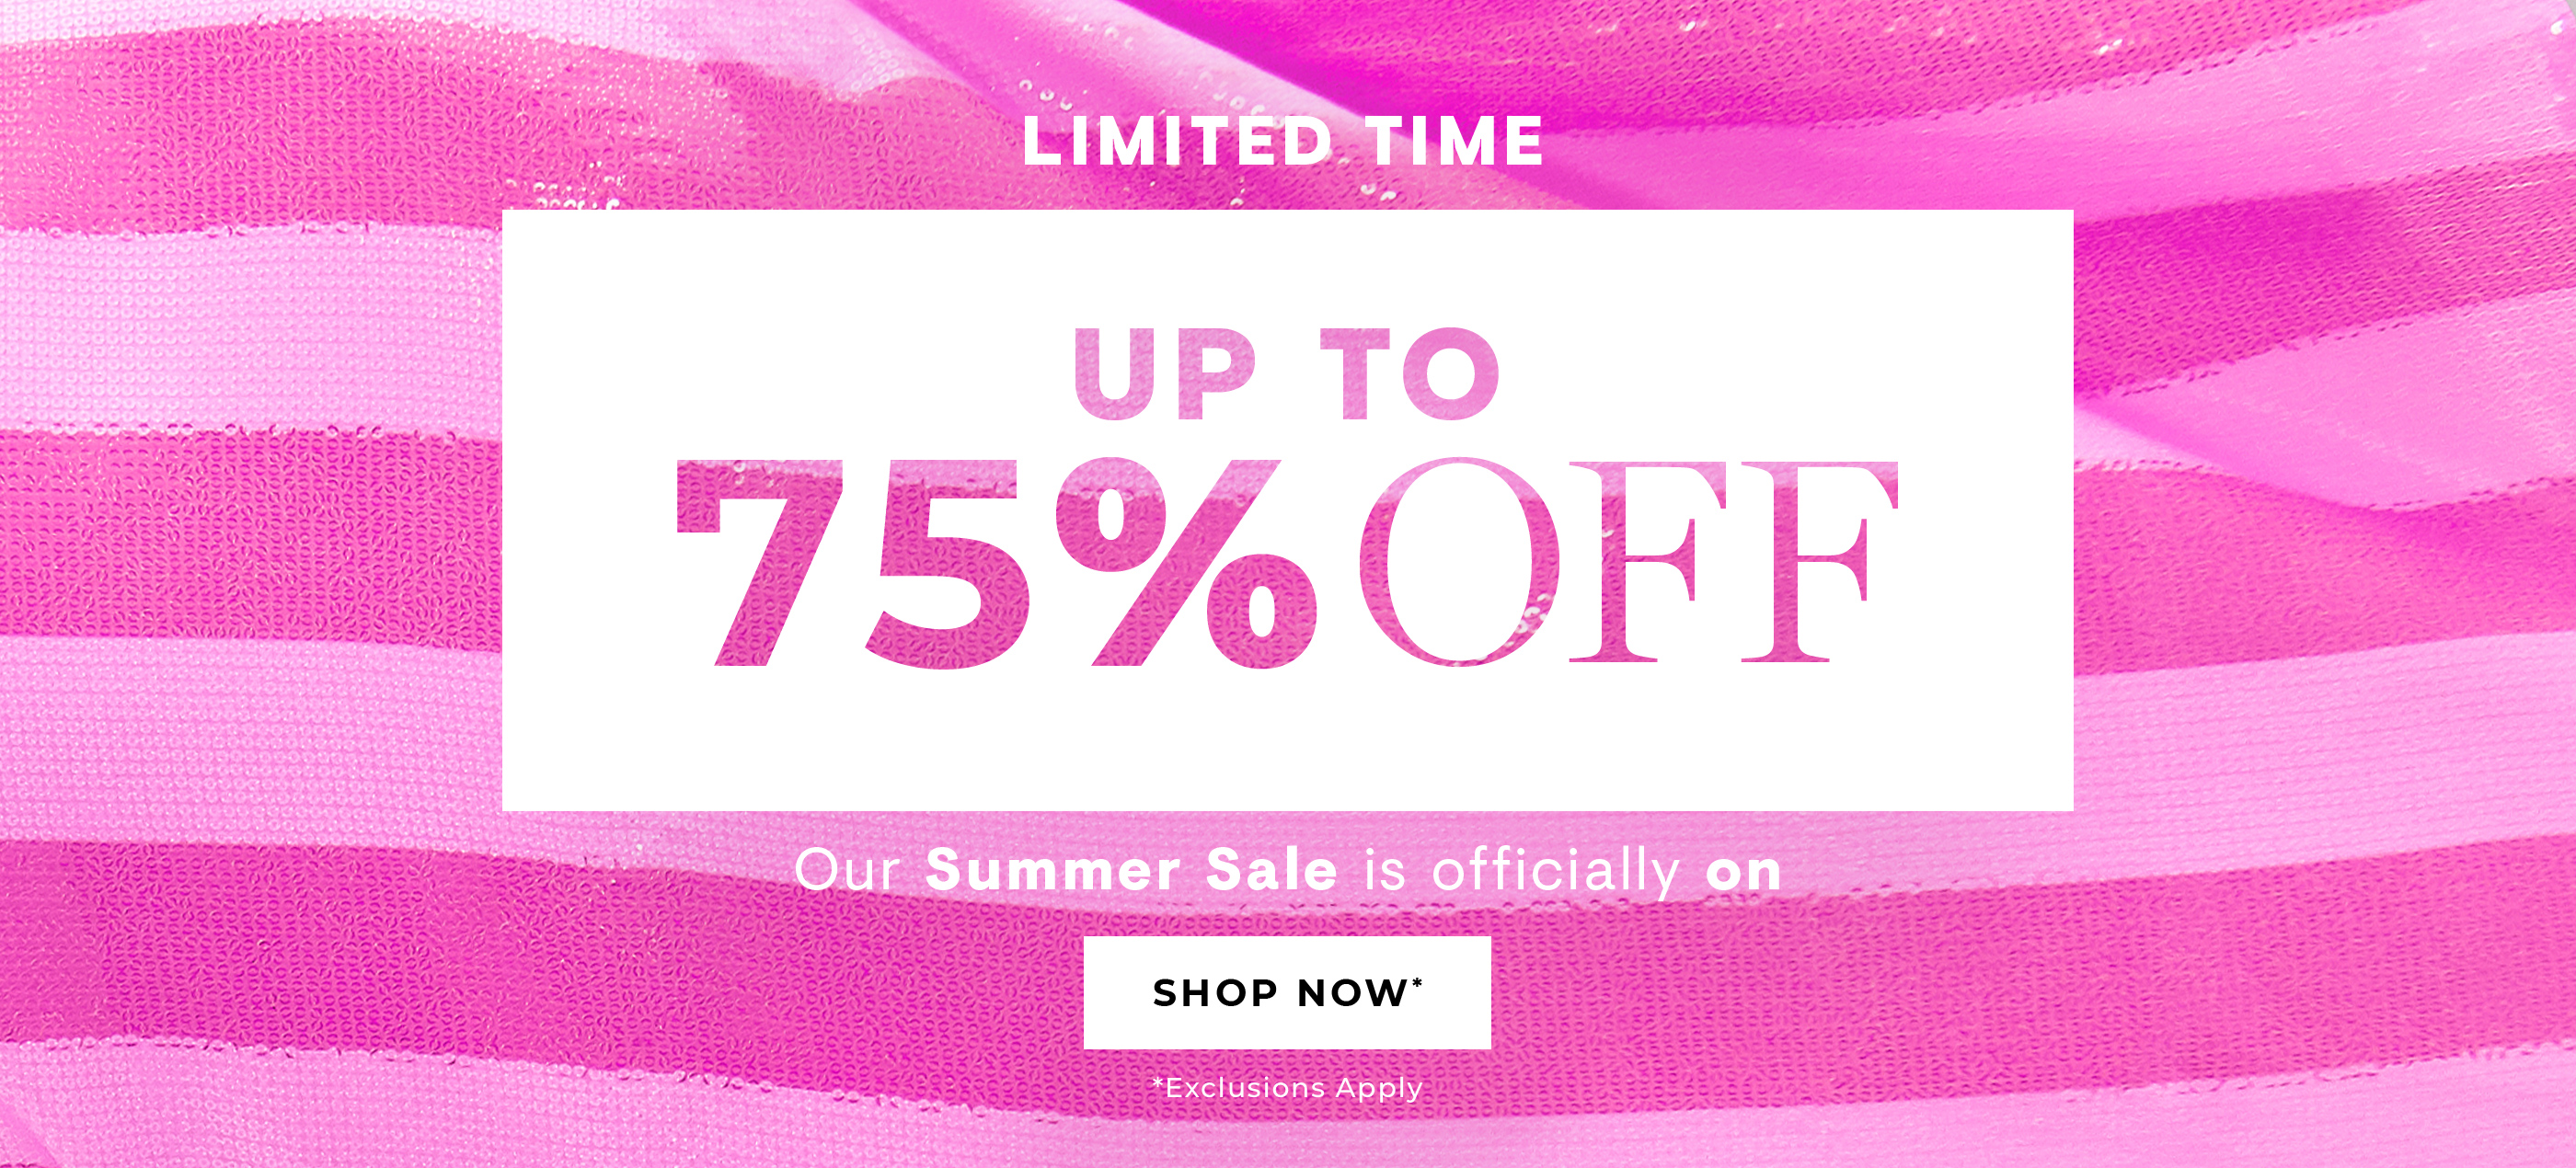 Our Summer Sale is officially on